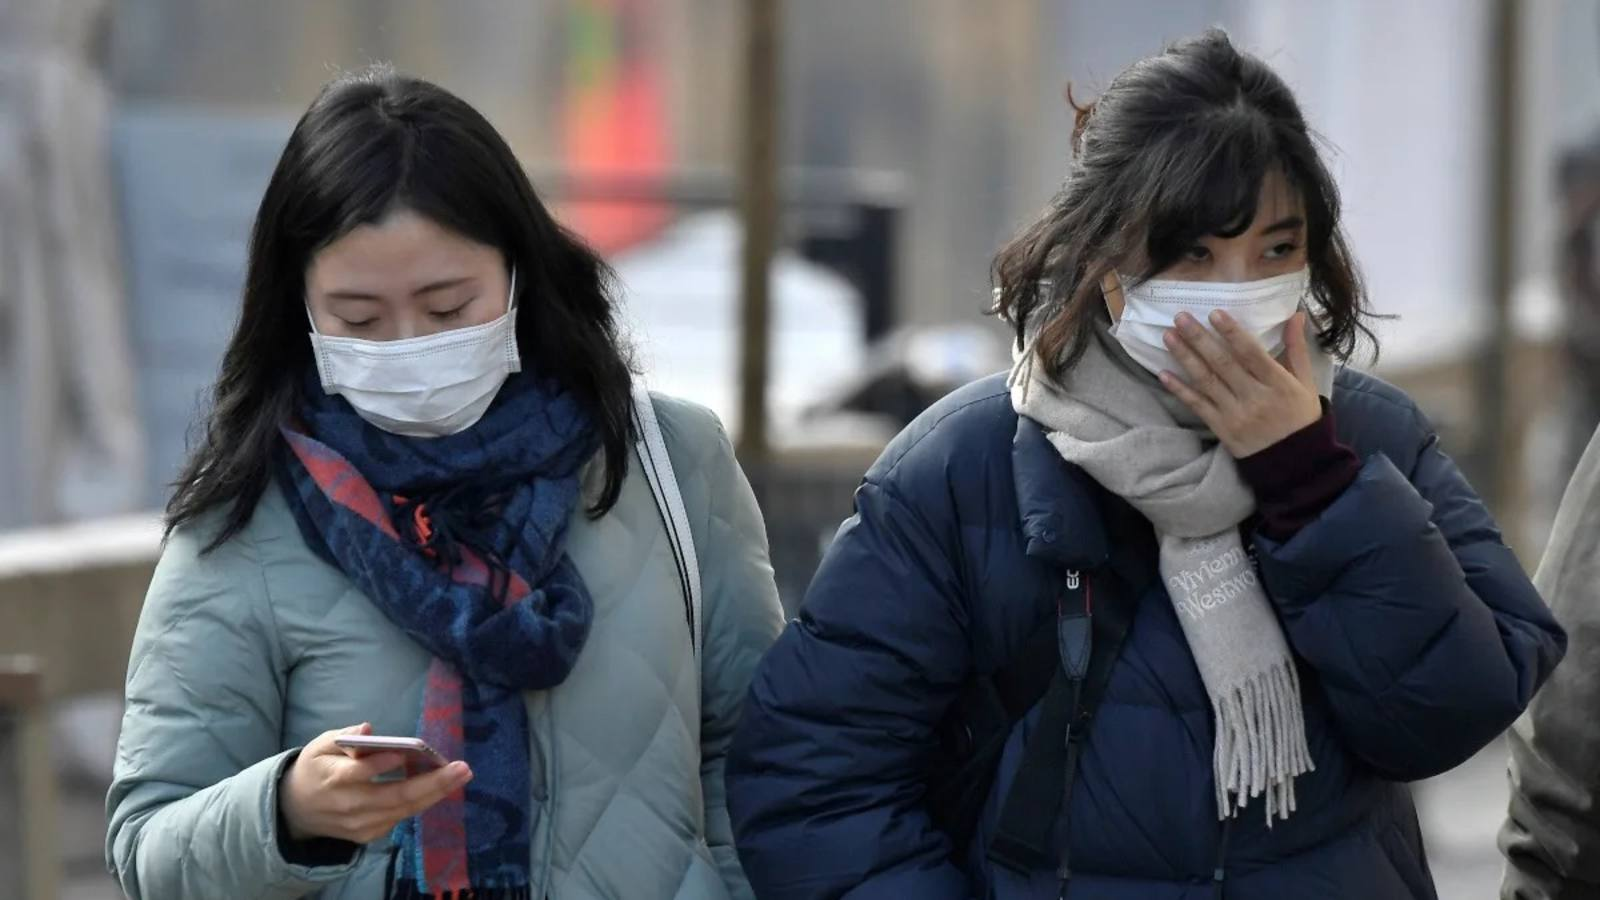 Spurs Virus Japan Masks Of In China New Surgical Output 24-hour